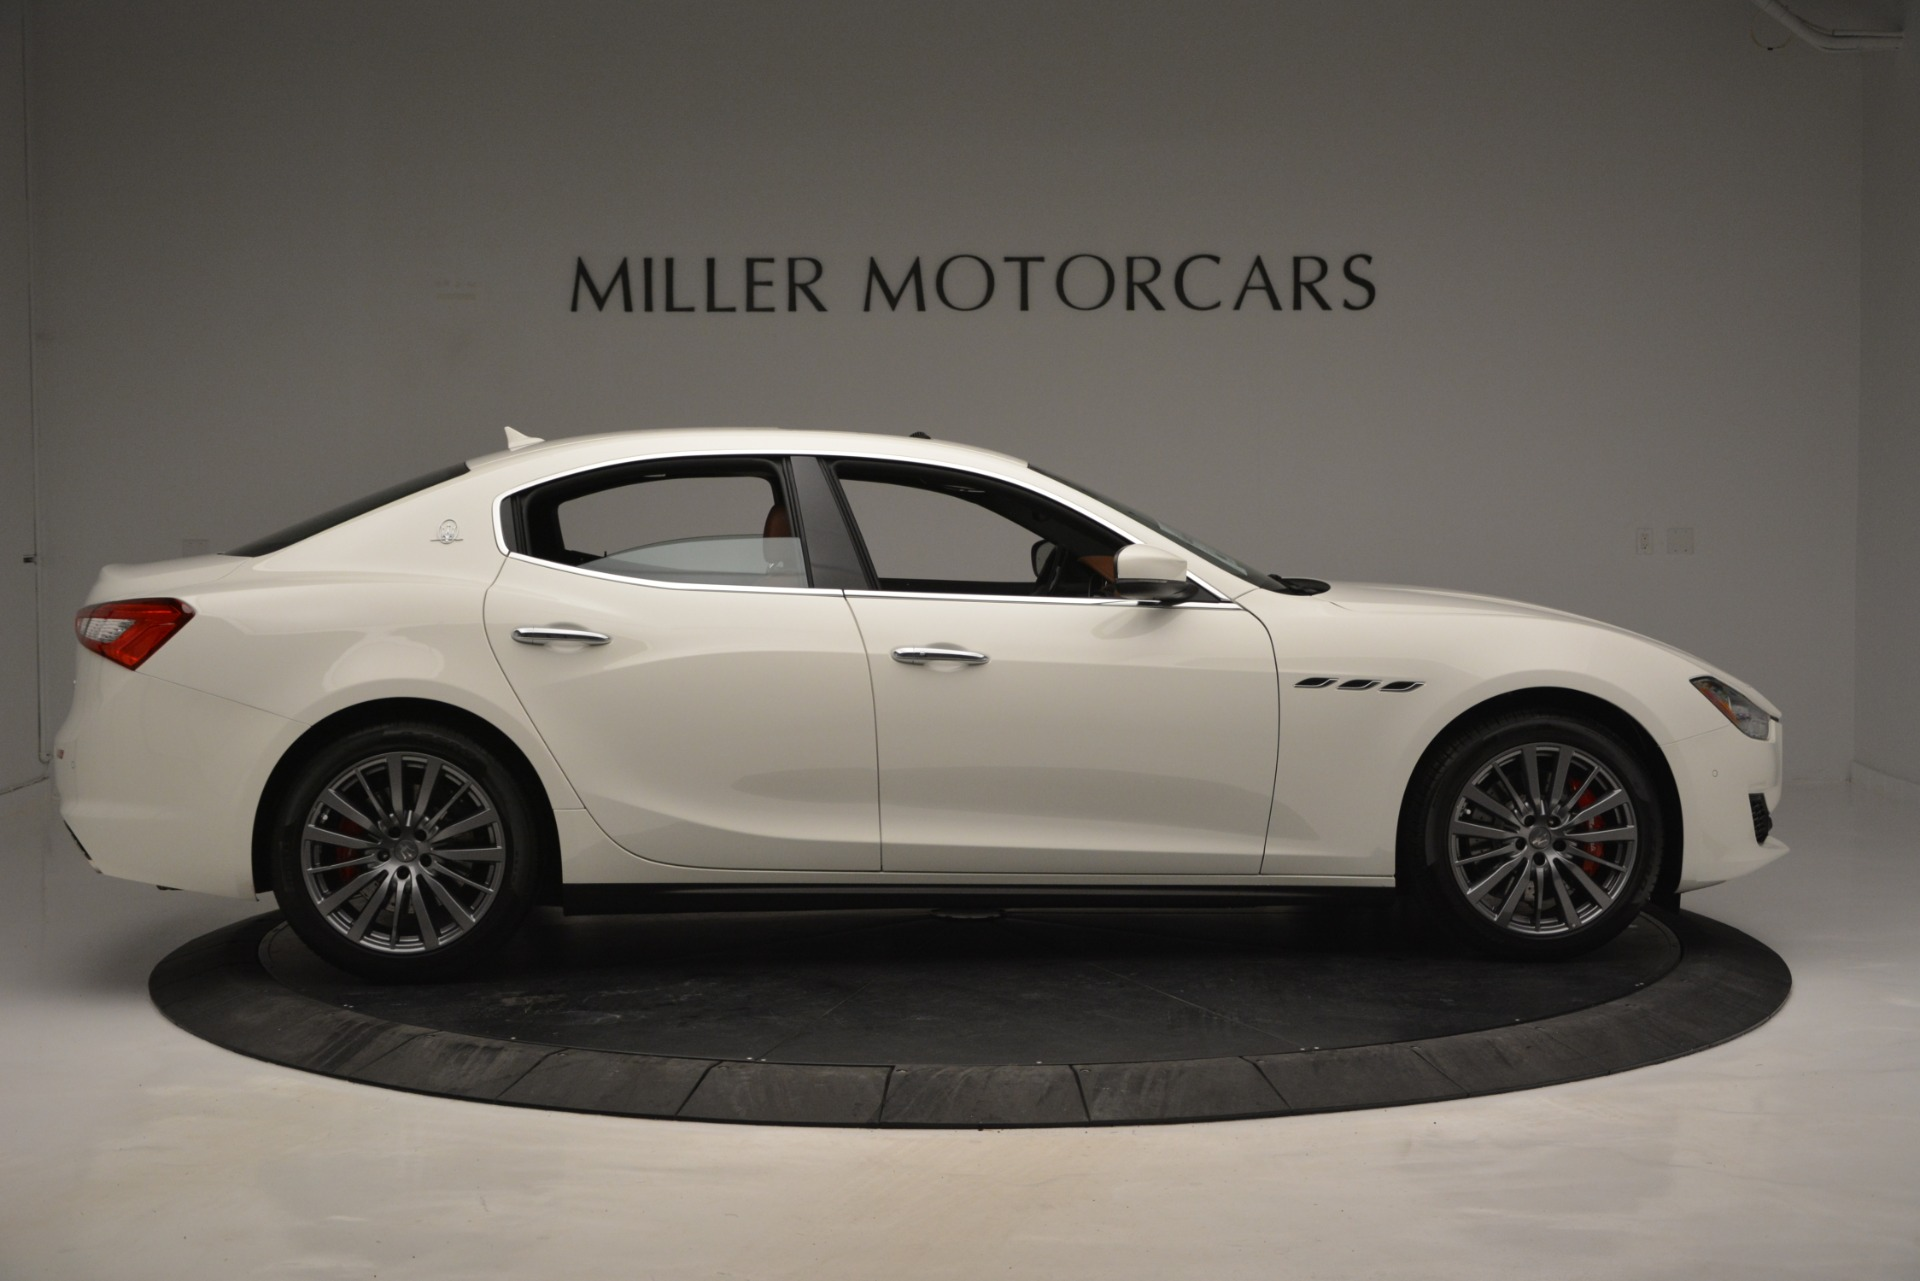 New 2019 Maserati Ghibli S Q4 For Sale In Greenwich, CT. Alfa Romeo of Greenwich, M2245 2795_p12